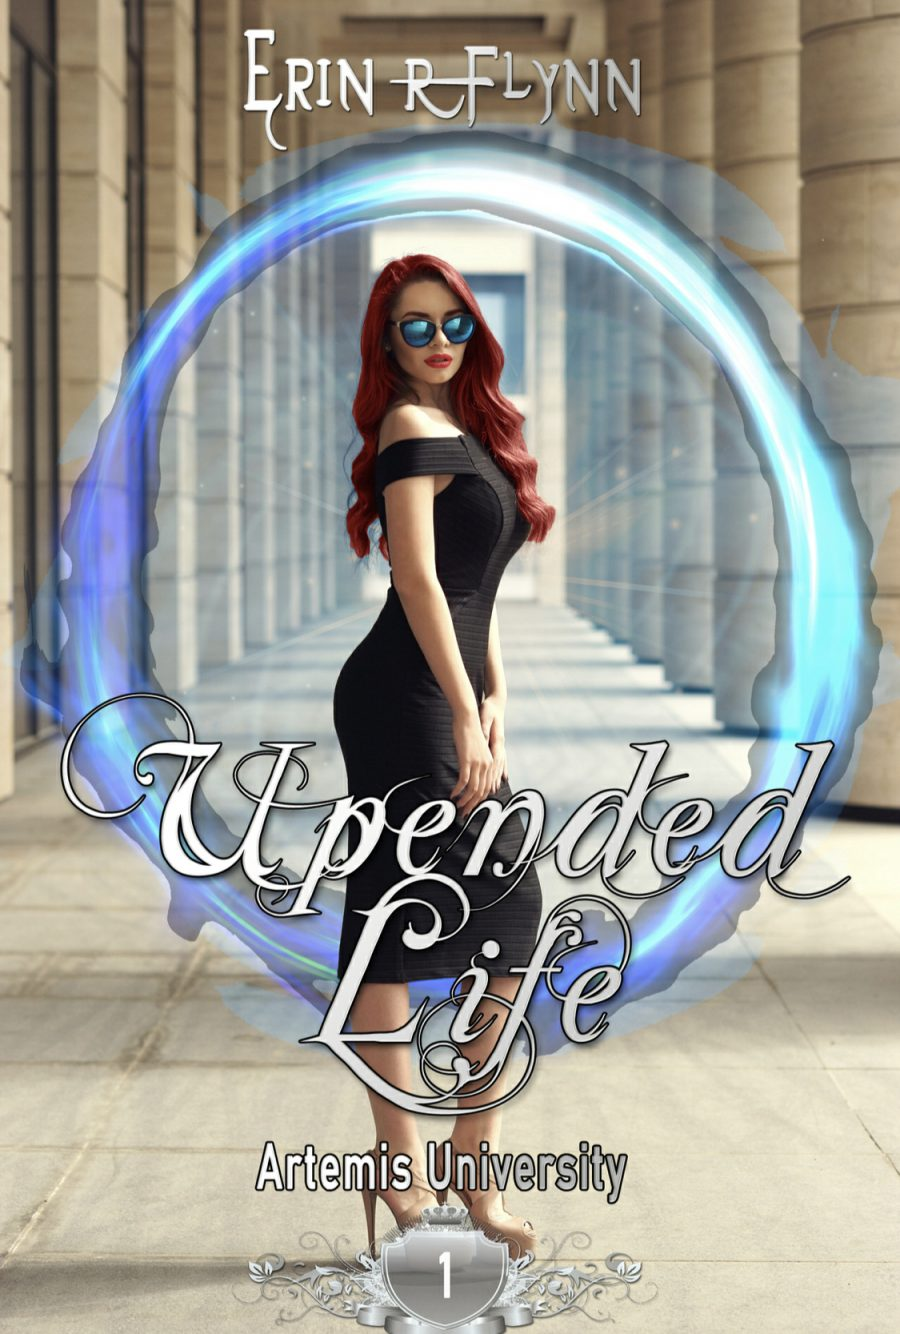 Upended Life (Artemis University - Book 1) by Erin R. Flynn - A Book Review #BookReview #RH #ReverseHarem #Academy #4Stars #AdultUniversity #MediumBurn #KindleUnlimited #KU